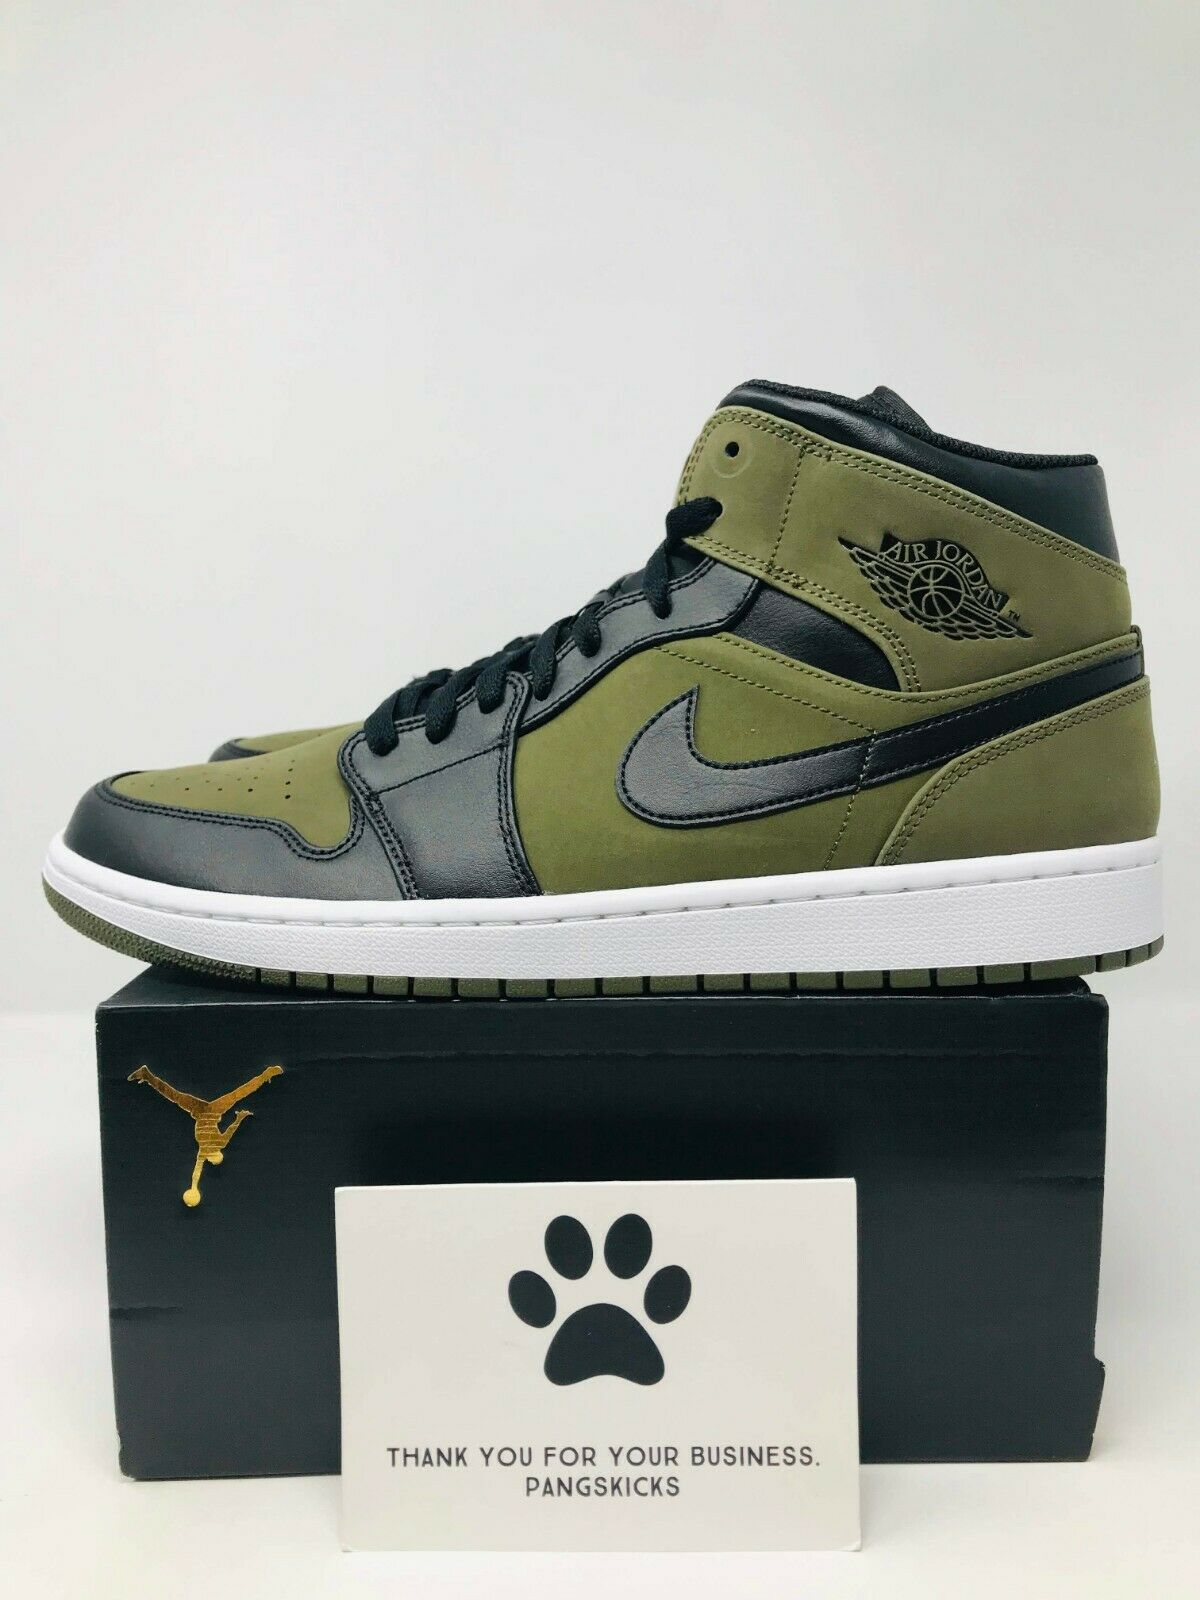 Nike Air Jordan 1 MID 'Olive Canvas' 554724-301 Size 13-14